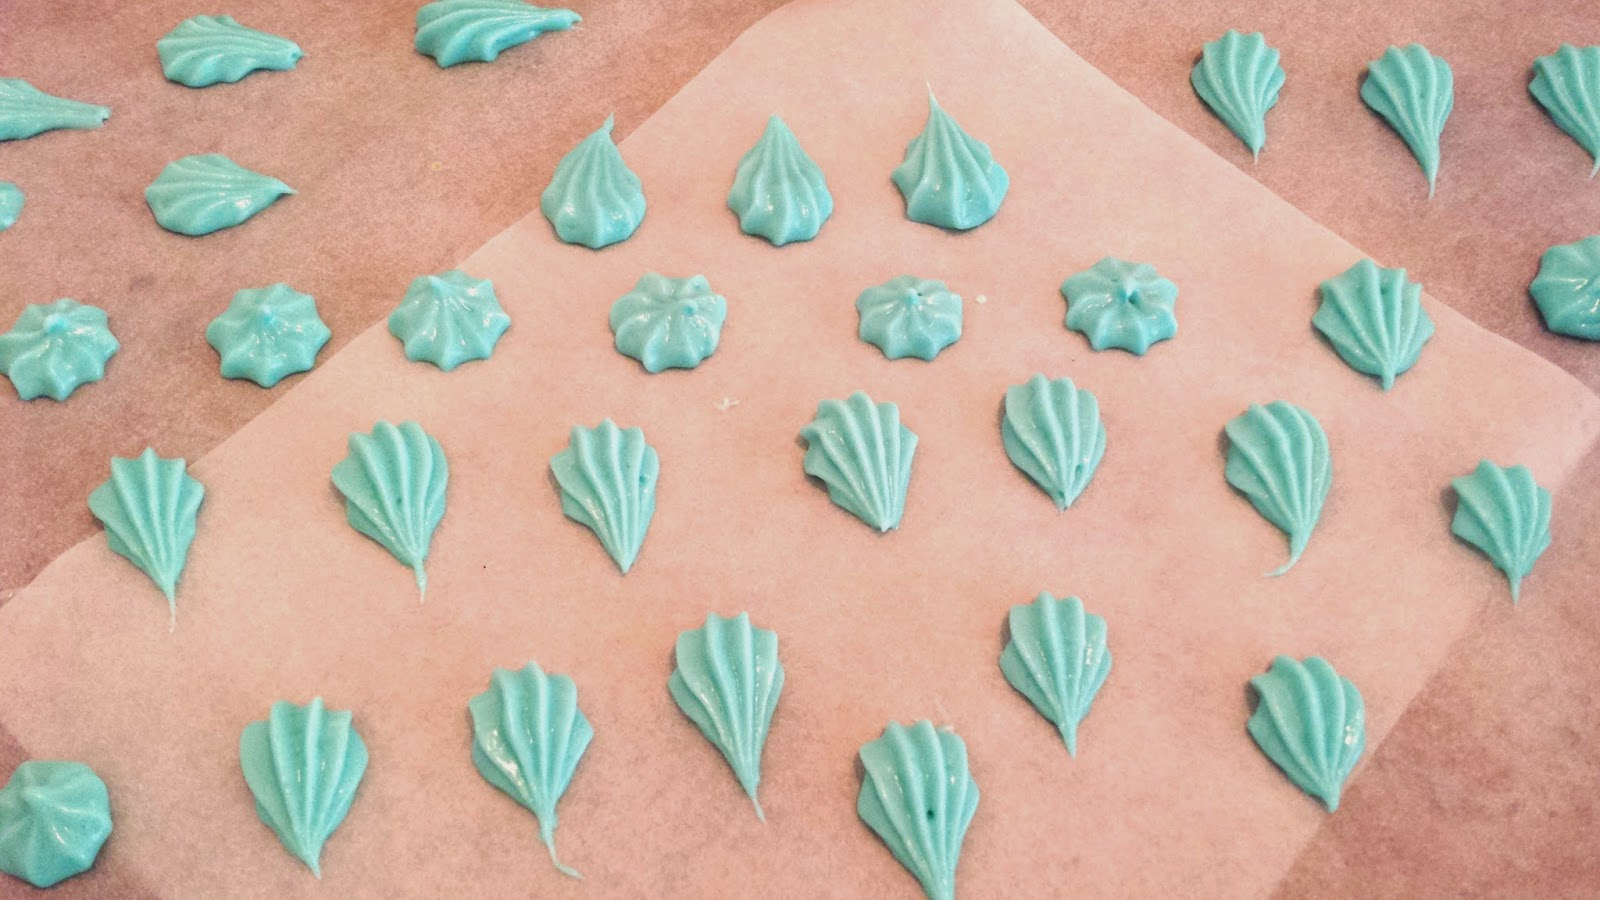 Cream cheese mints, beach shell mints